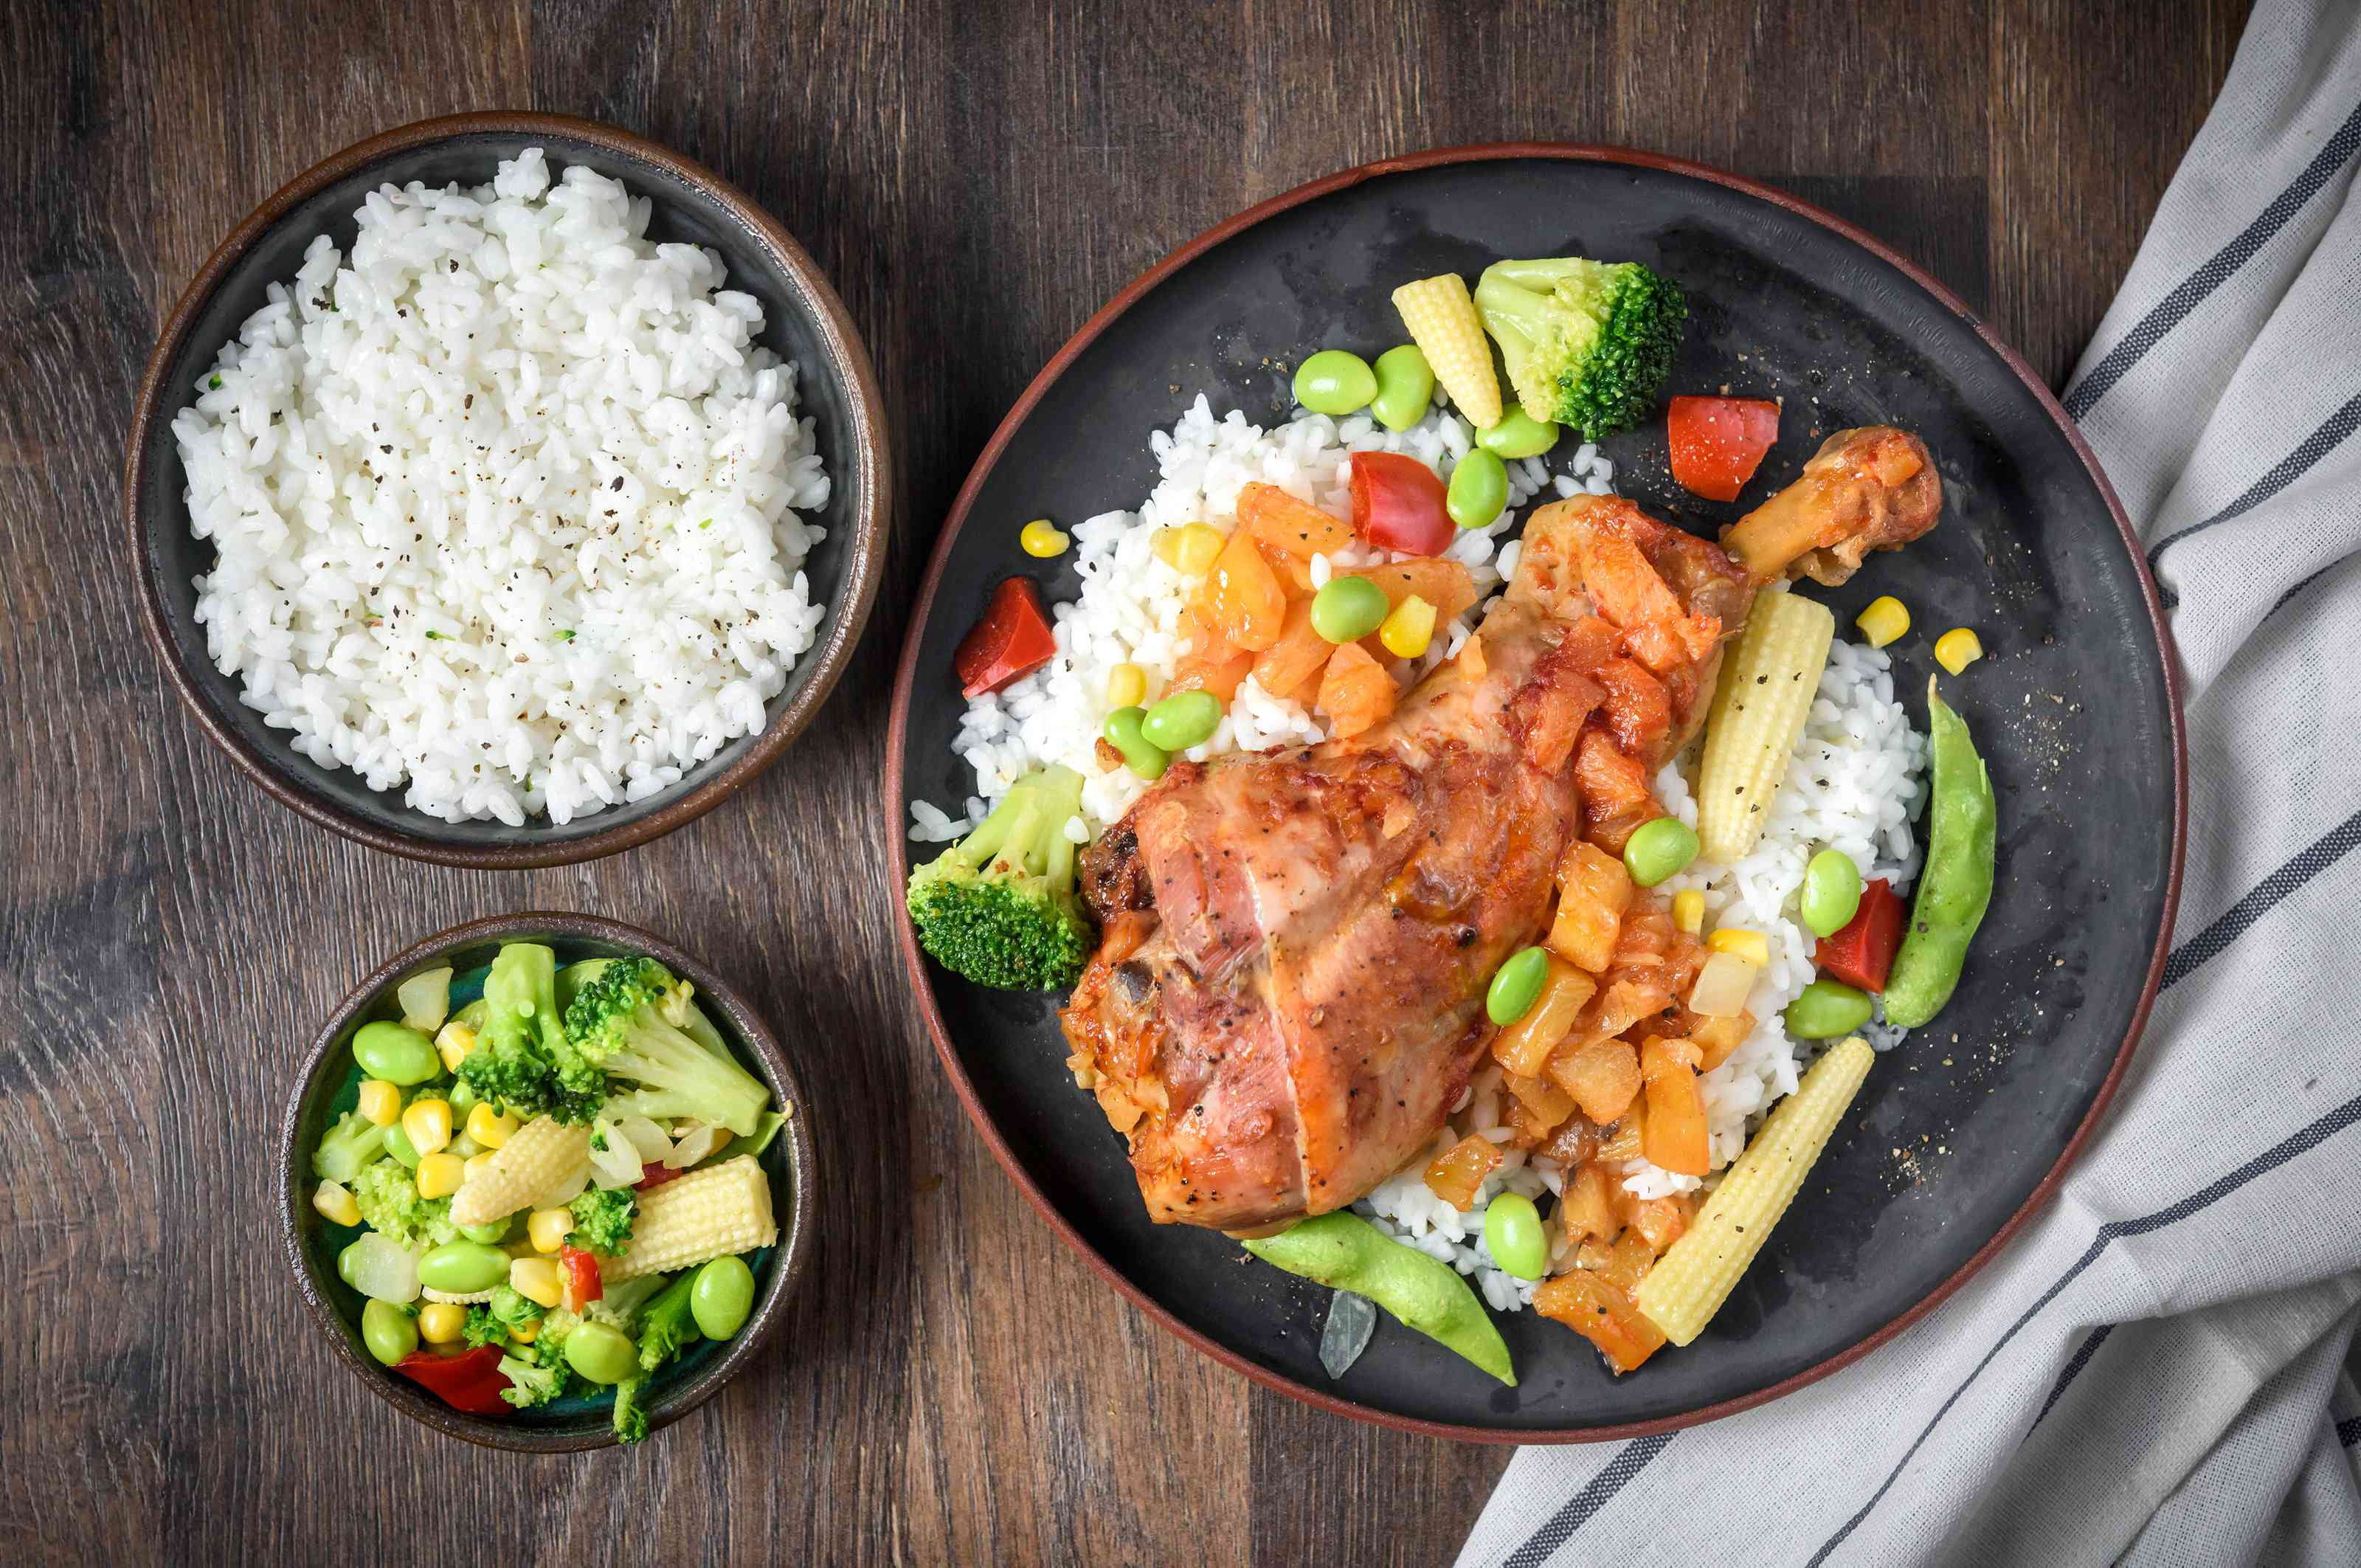 Slow cooker island barbecue turkey legs with a side of rice and vegetables